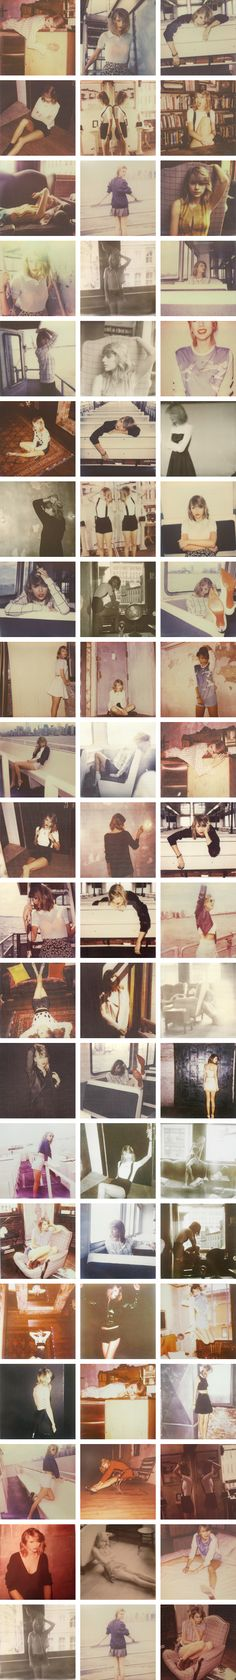 All the poloraids of Taylor swift! Please visit our website @ https://22taylorswift.com